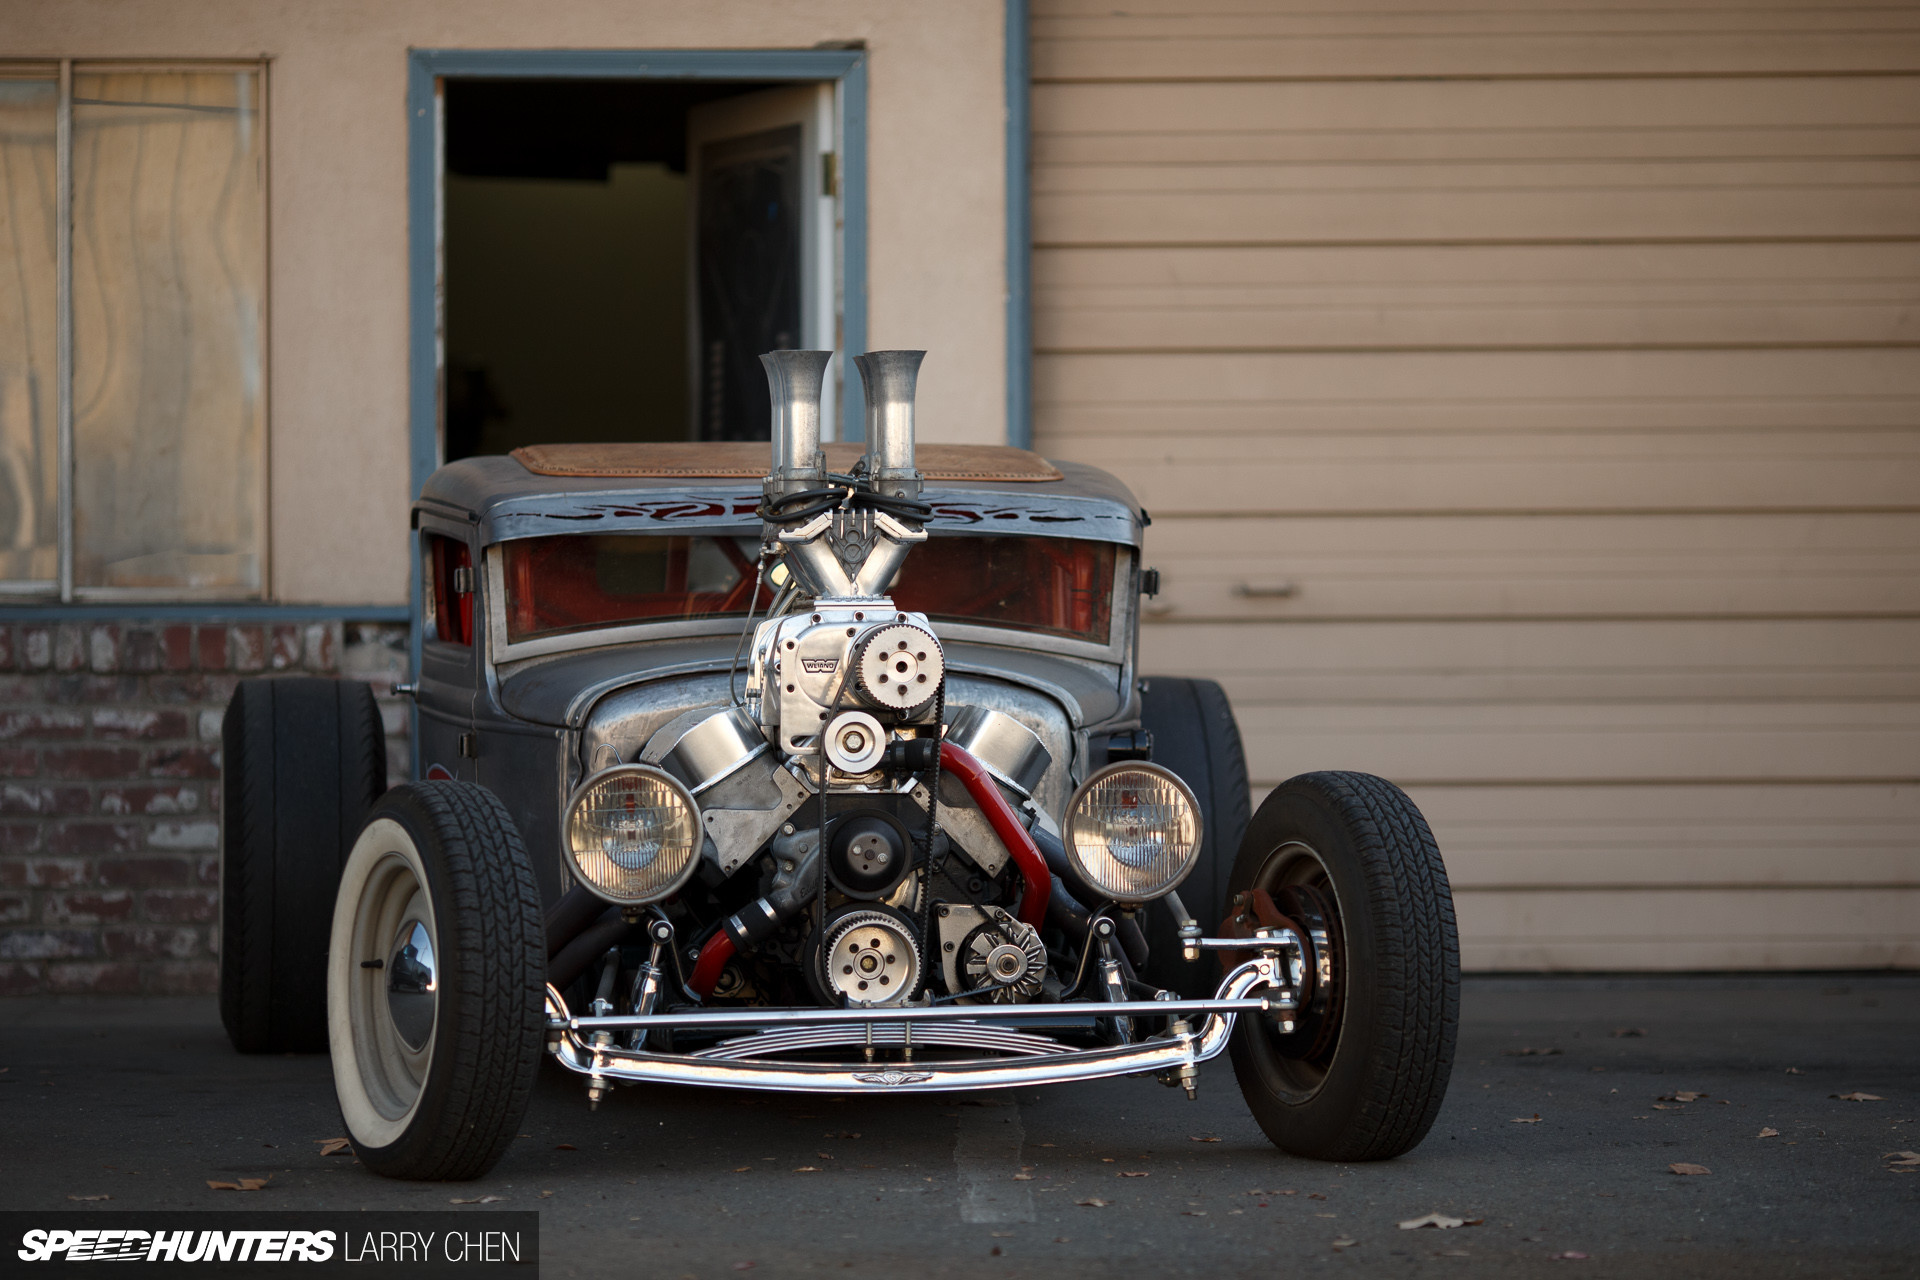 1920x1280 Hot Rod Rat Rod Slammed Engine HD wallpaper thumb